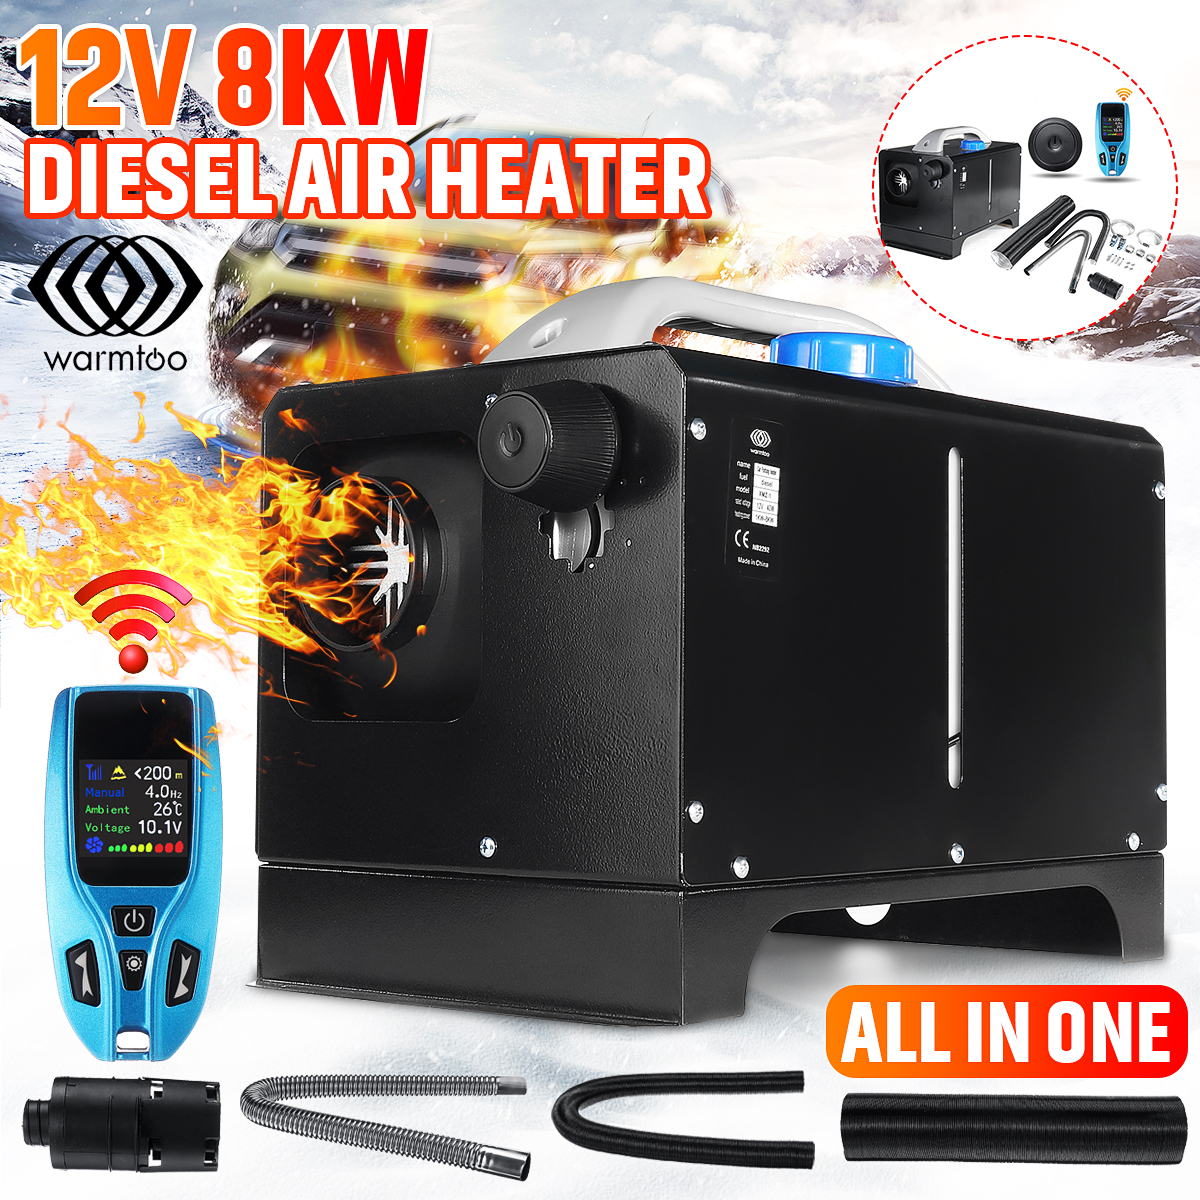 2020NEW All In One Diesel Air Heater 8KW 12V LCD Monitor Remote Trucks Boat Car